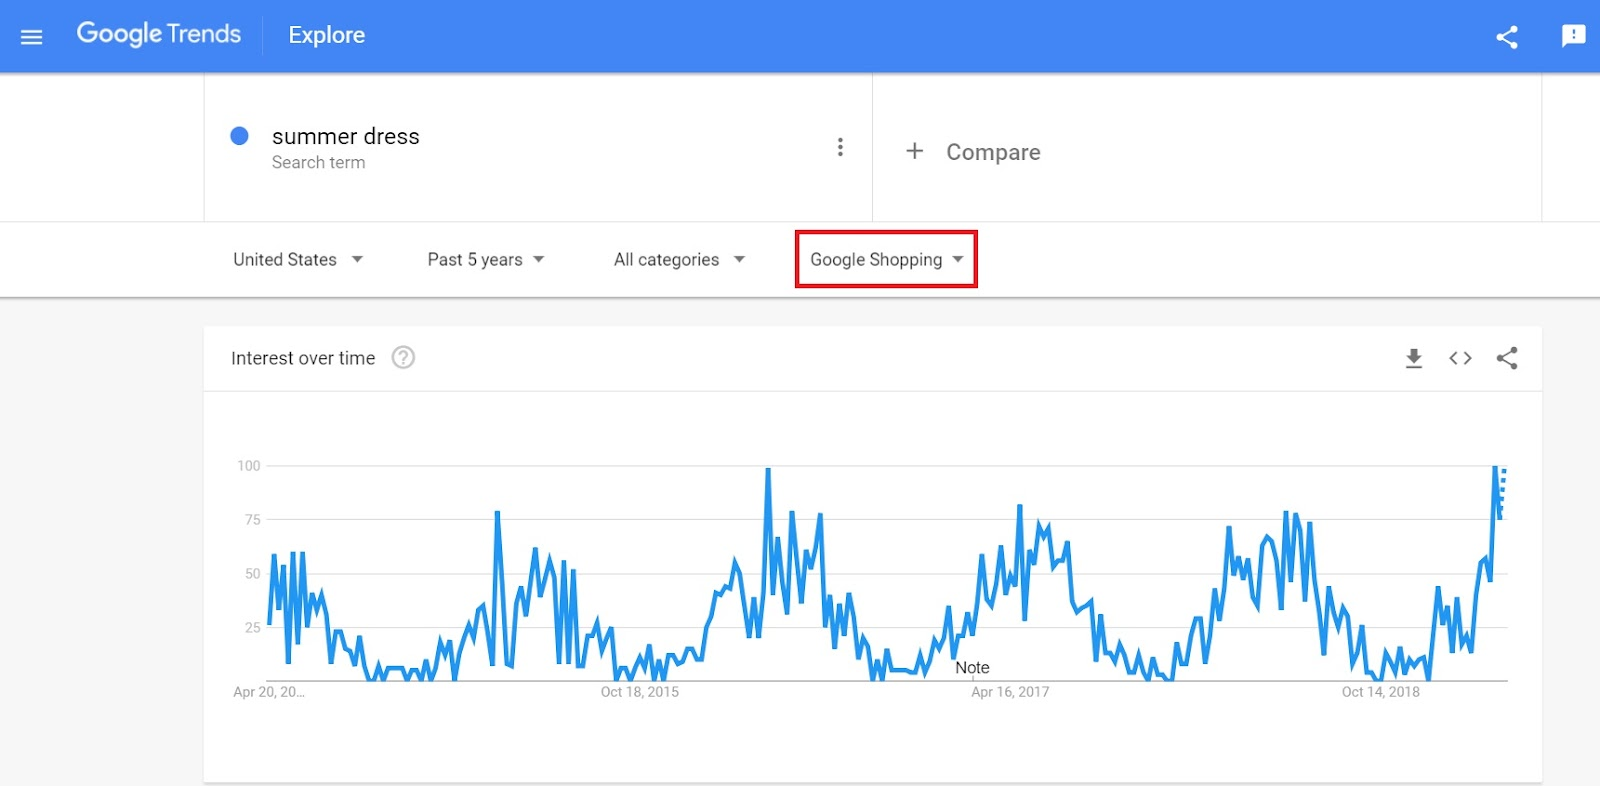 Google Trends Google Shopping Filter